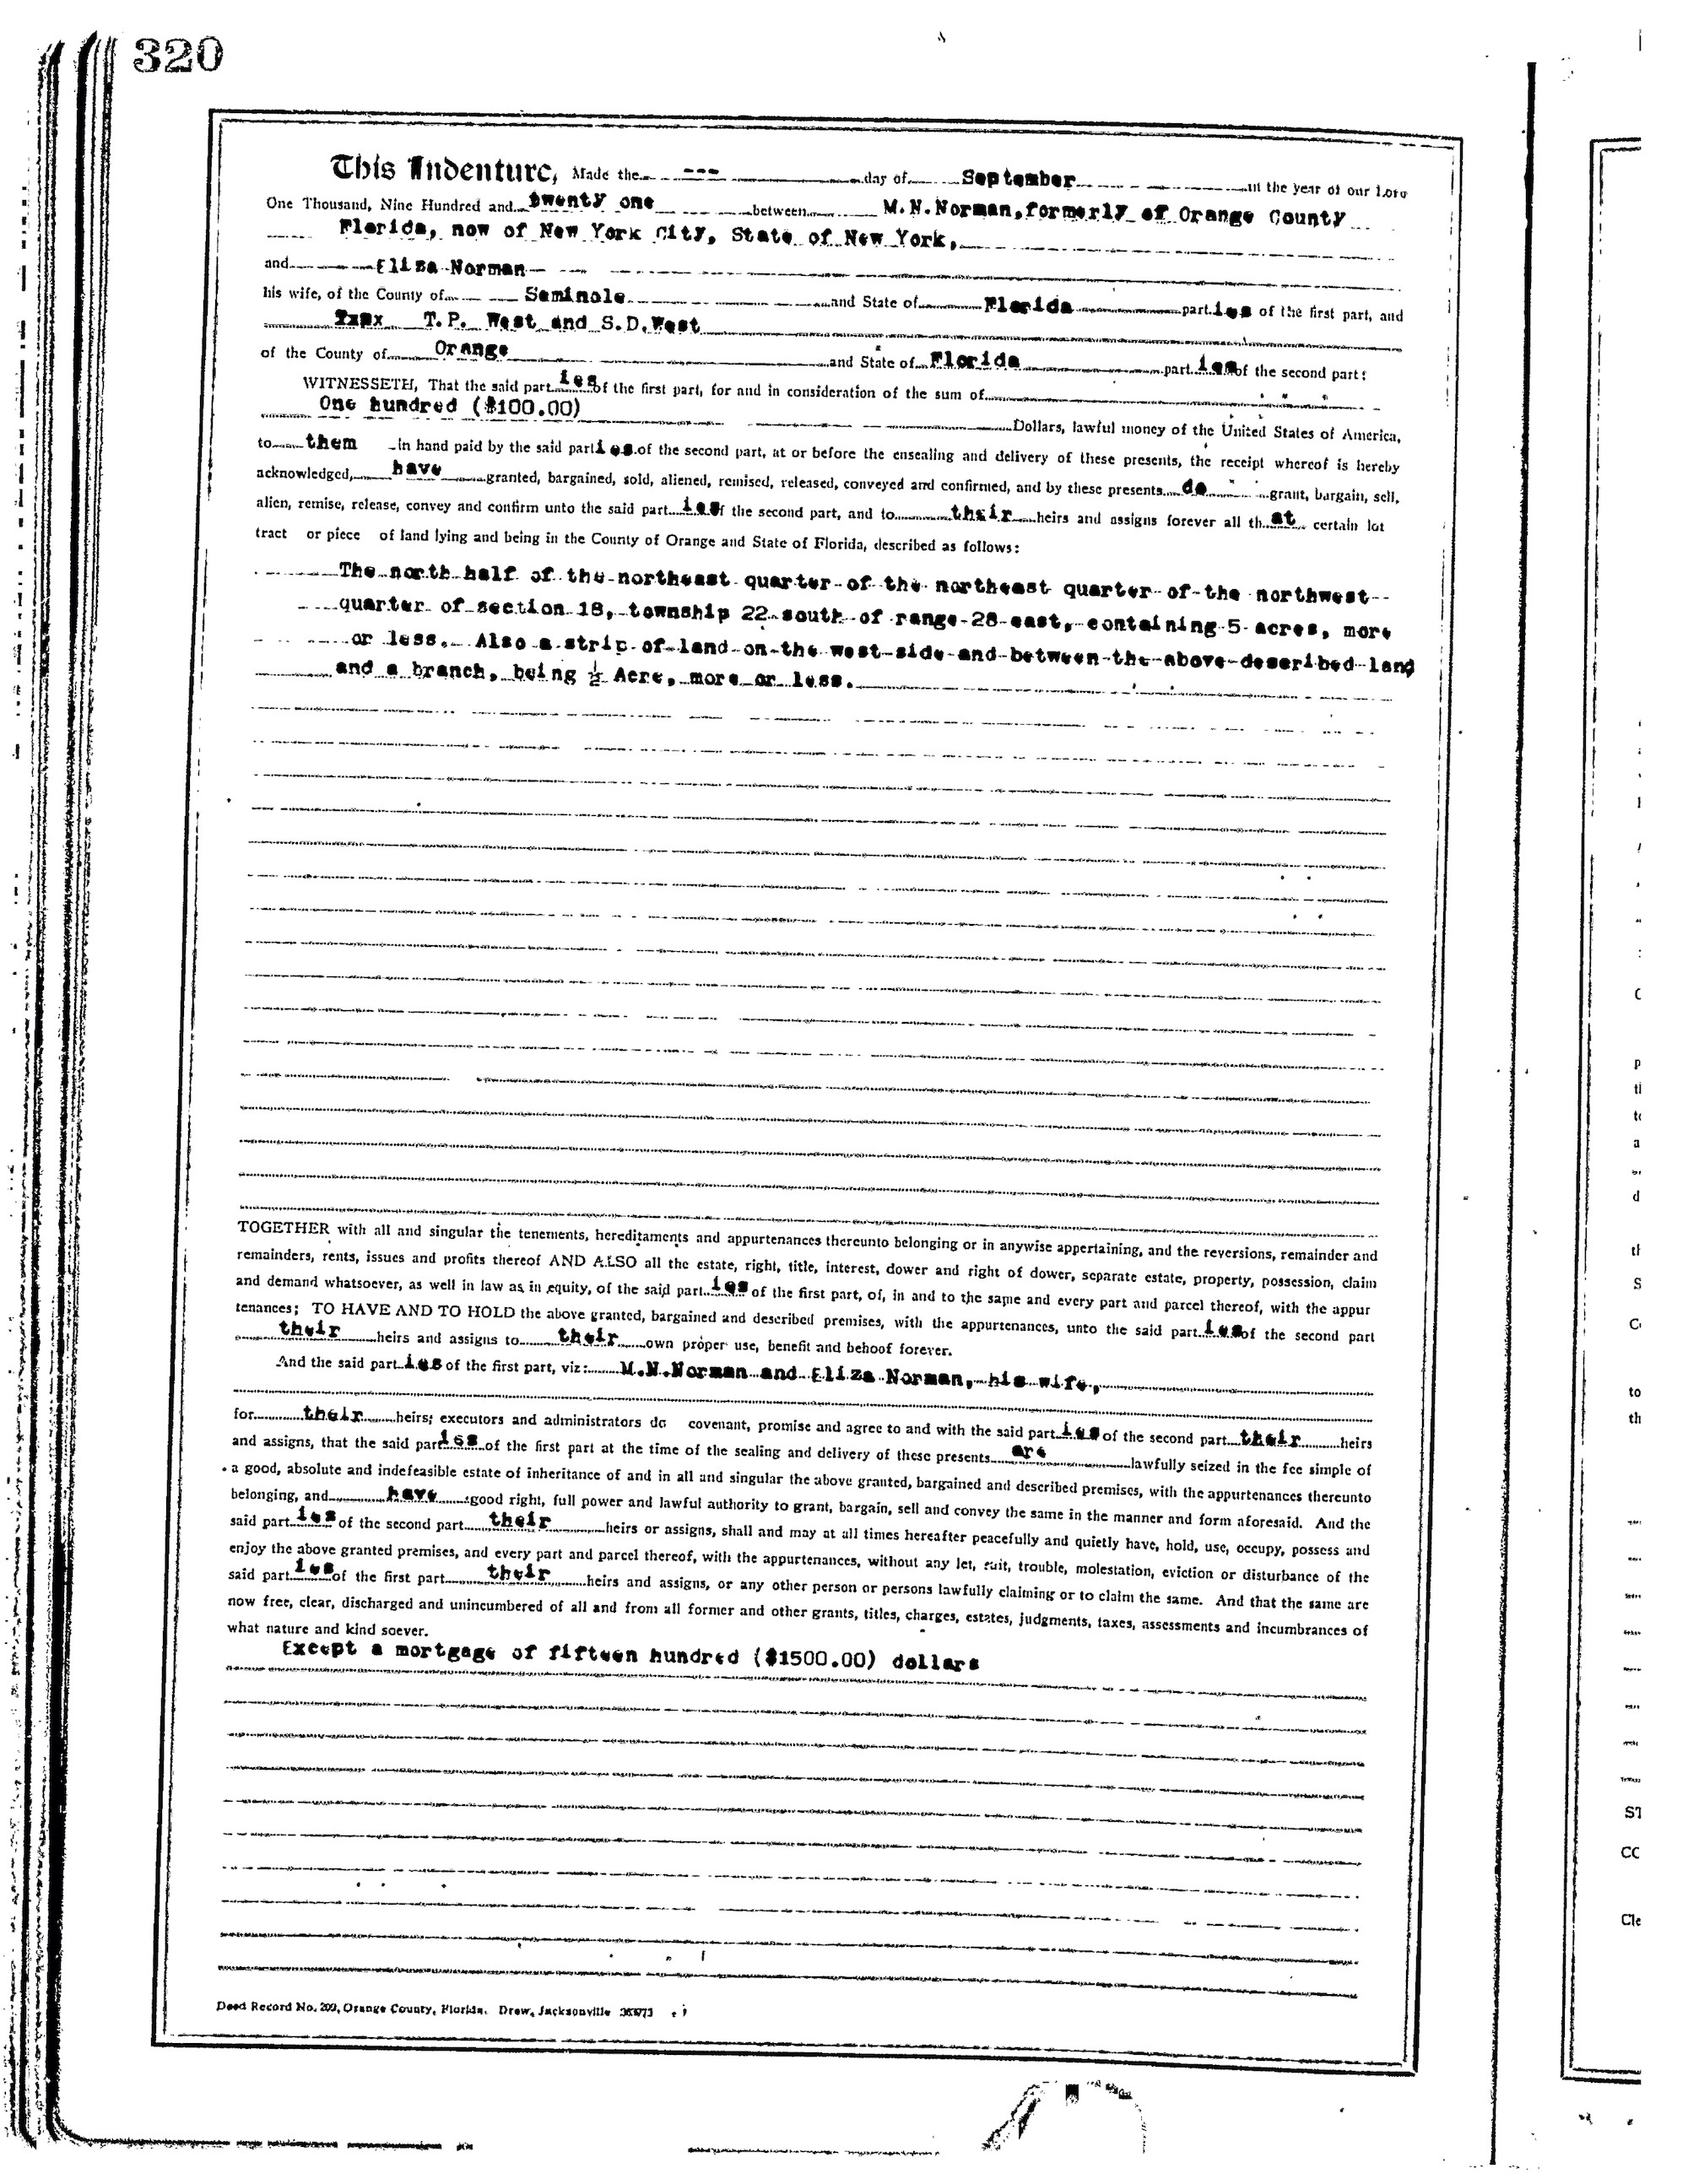 The land deed proving Mose Norman owned land in Ocoee. - PHOTOS AND DOCUMENTS COURTESY ORANGE COUNTY REGIONAL HISTORY CENTER